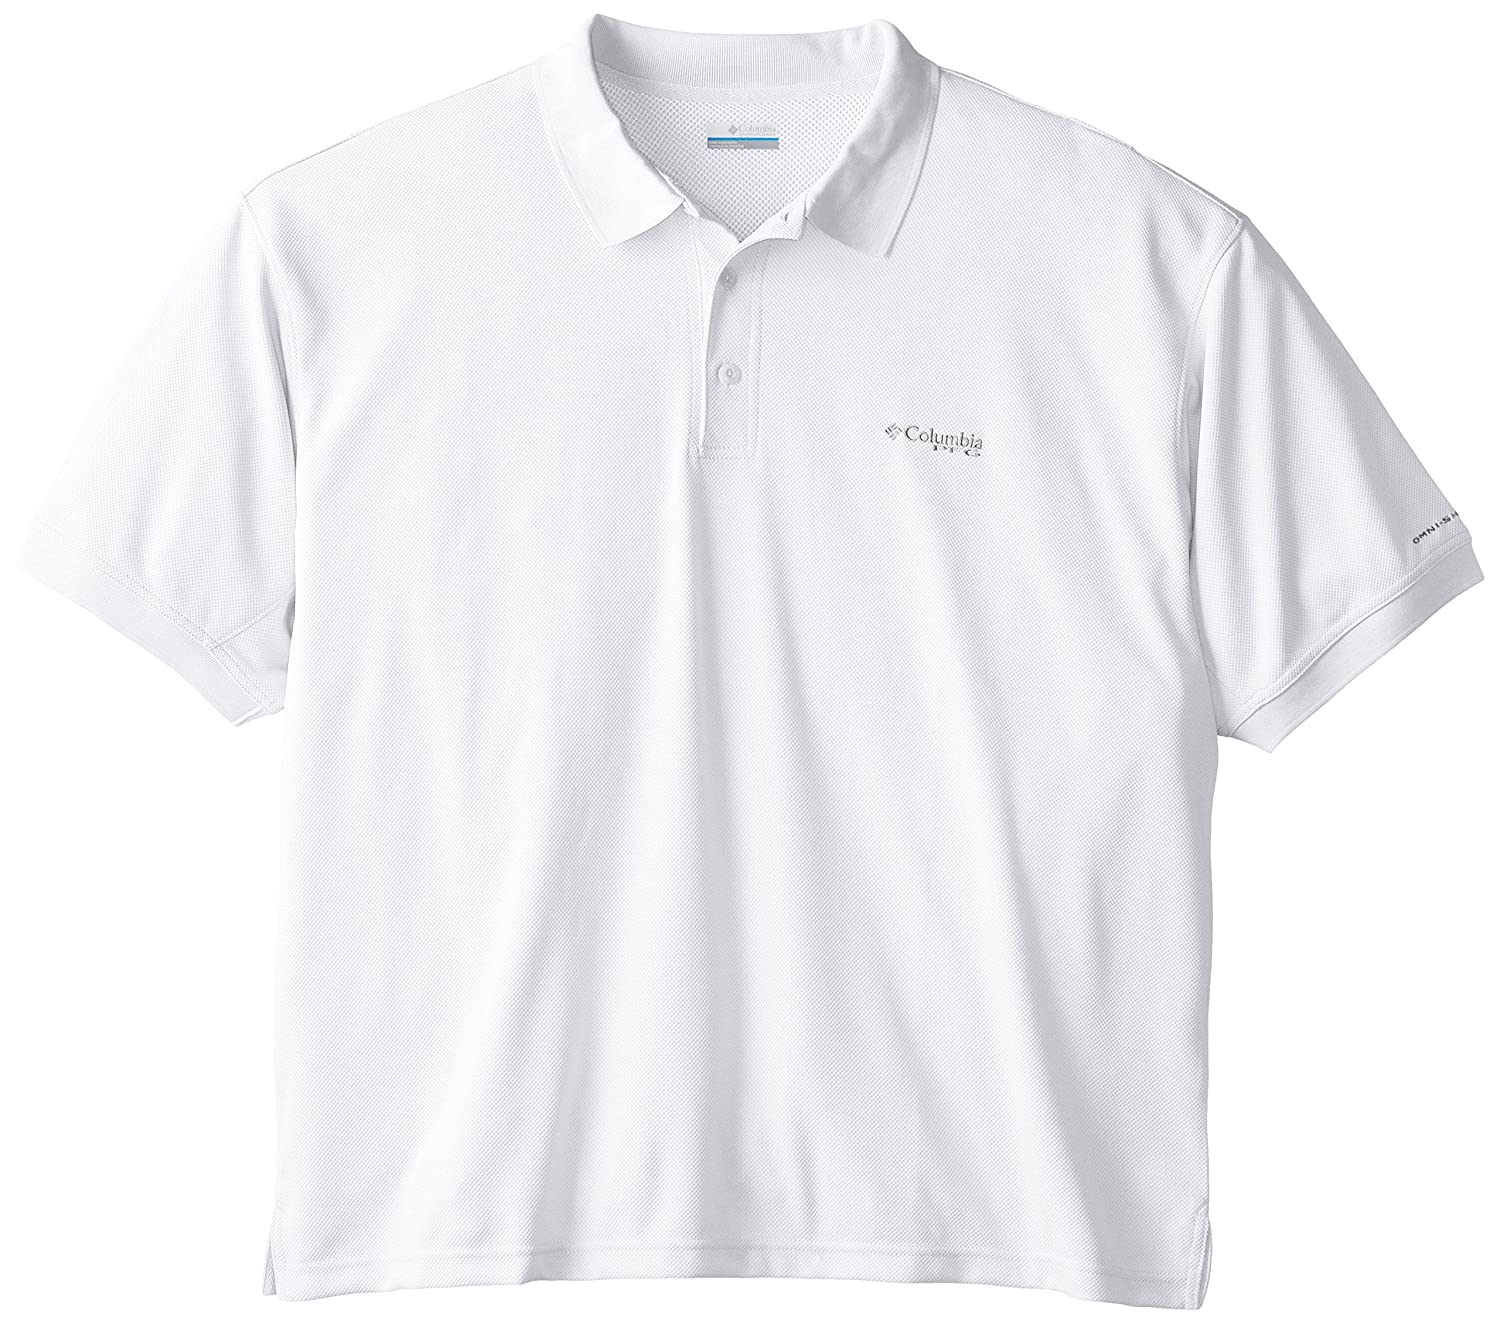 c7155fa5 Amazon.com: Columbia Sportswear Men's Perfect Cast Polo Shirt, White,  X-Large Tall: Clothing